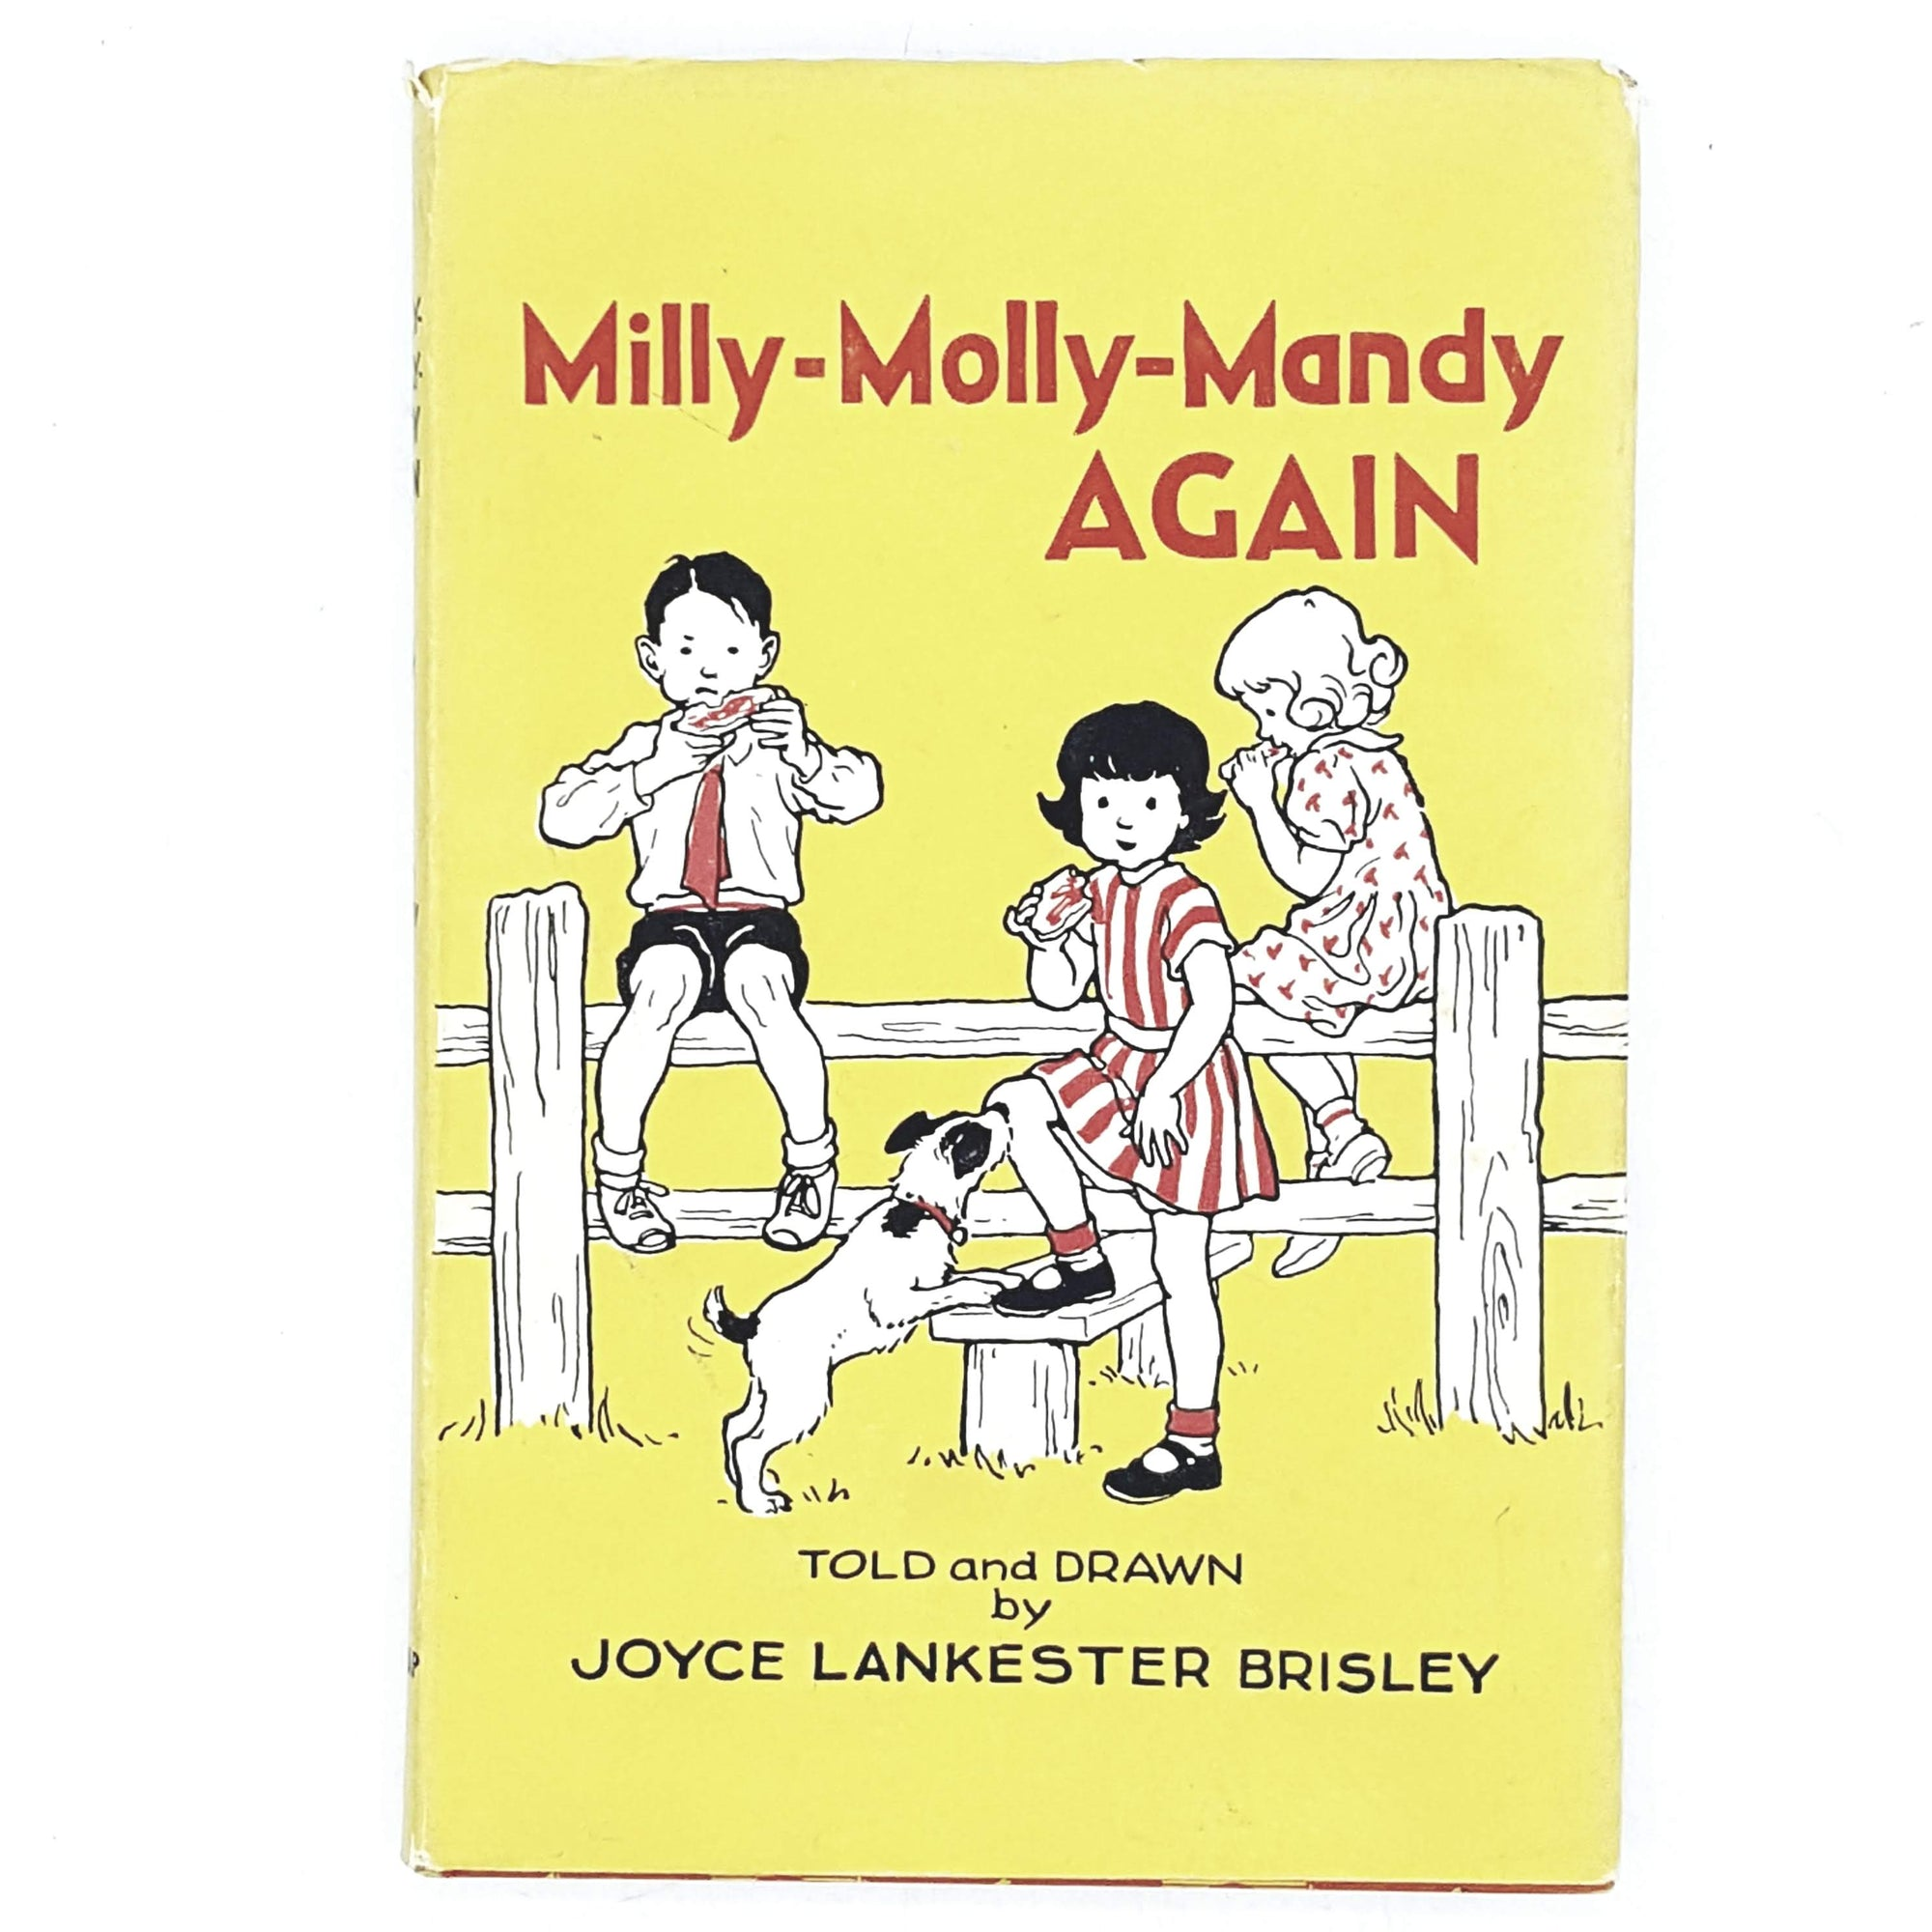 Vintage Children's Milly-Molly-Mandy Again by Joyce Lankester Brisley 1967